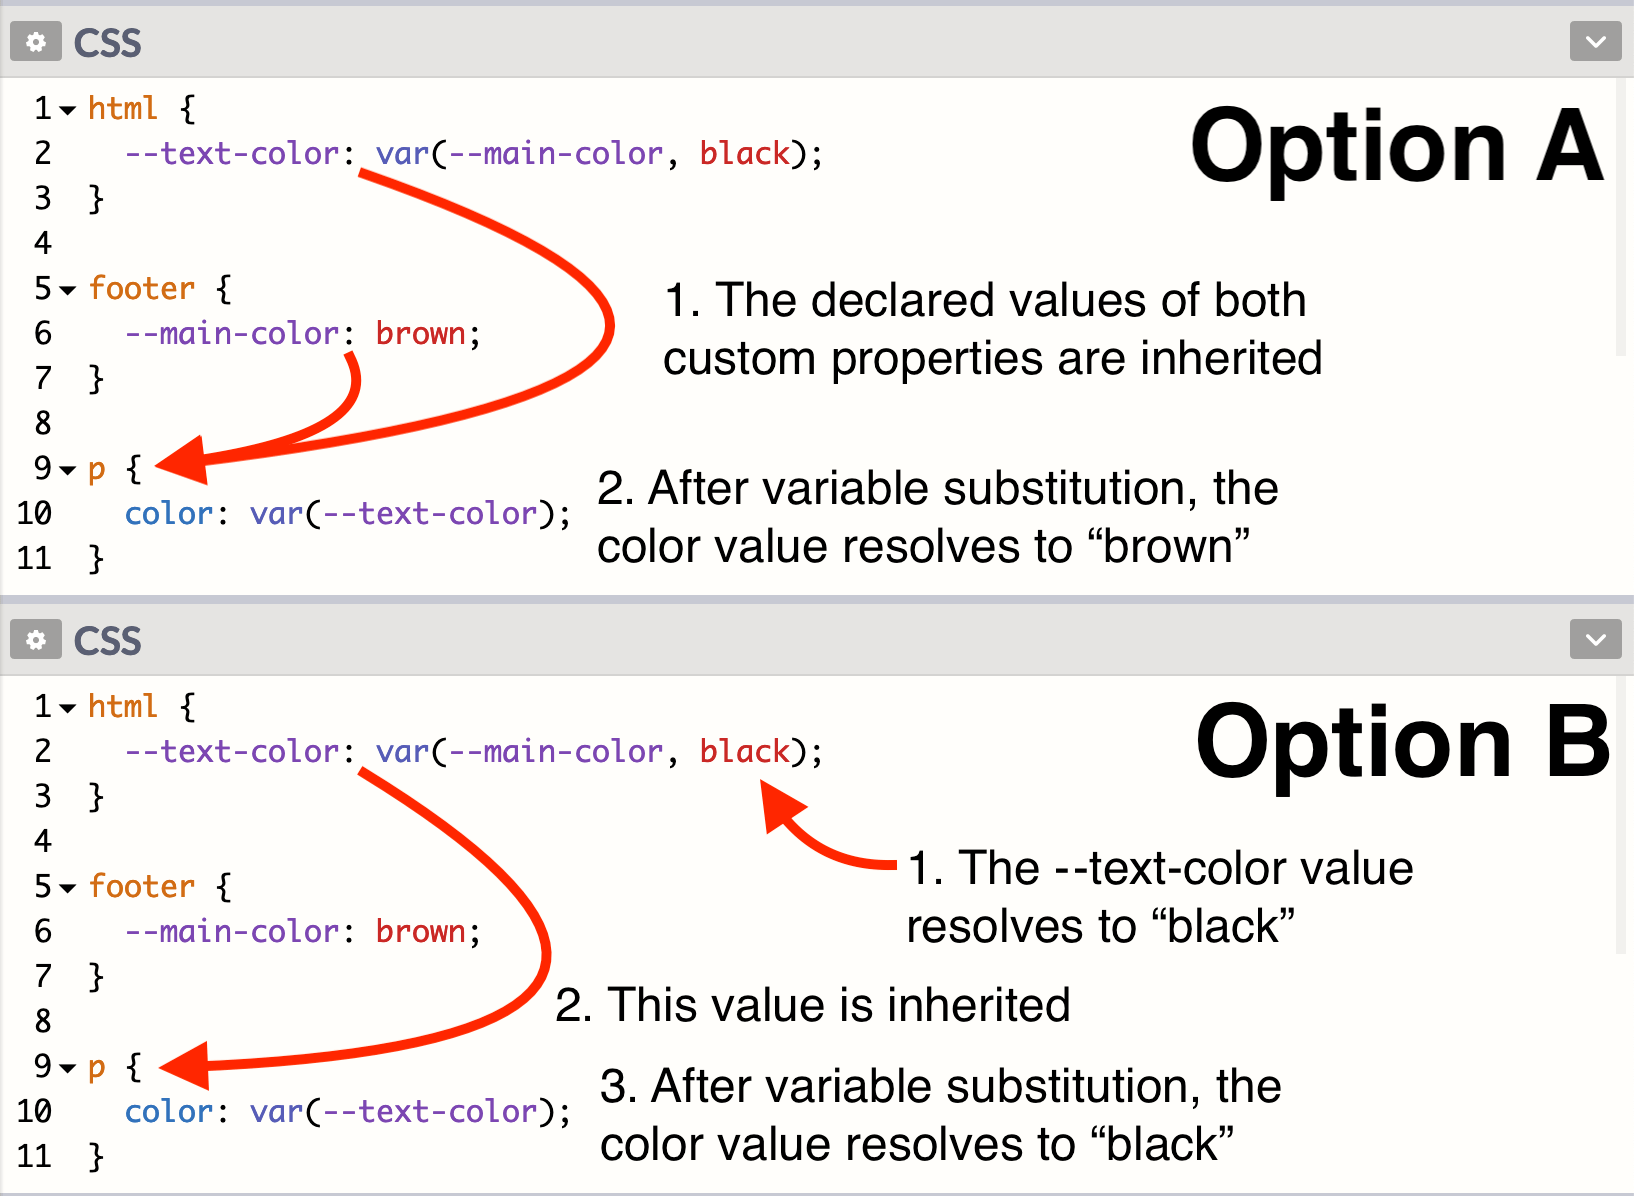 Two CSS rulesets, one as Option A and the other as Option B, both showing how variables are inherited and resolved between elements.